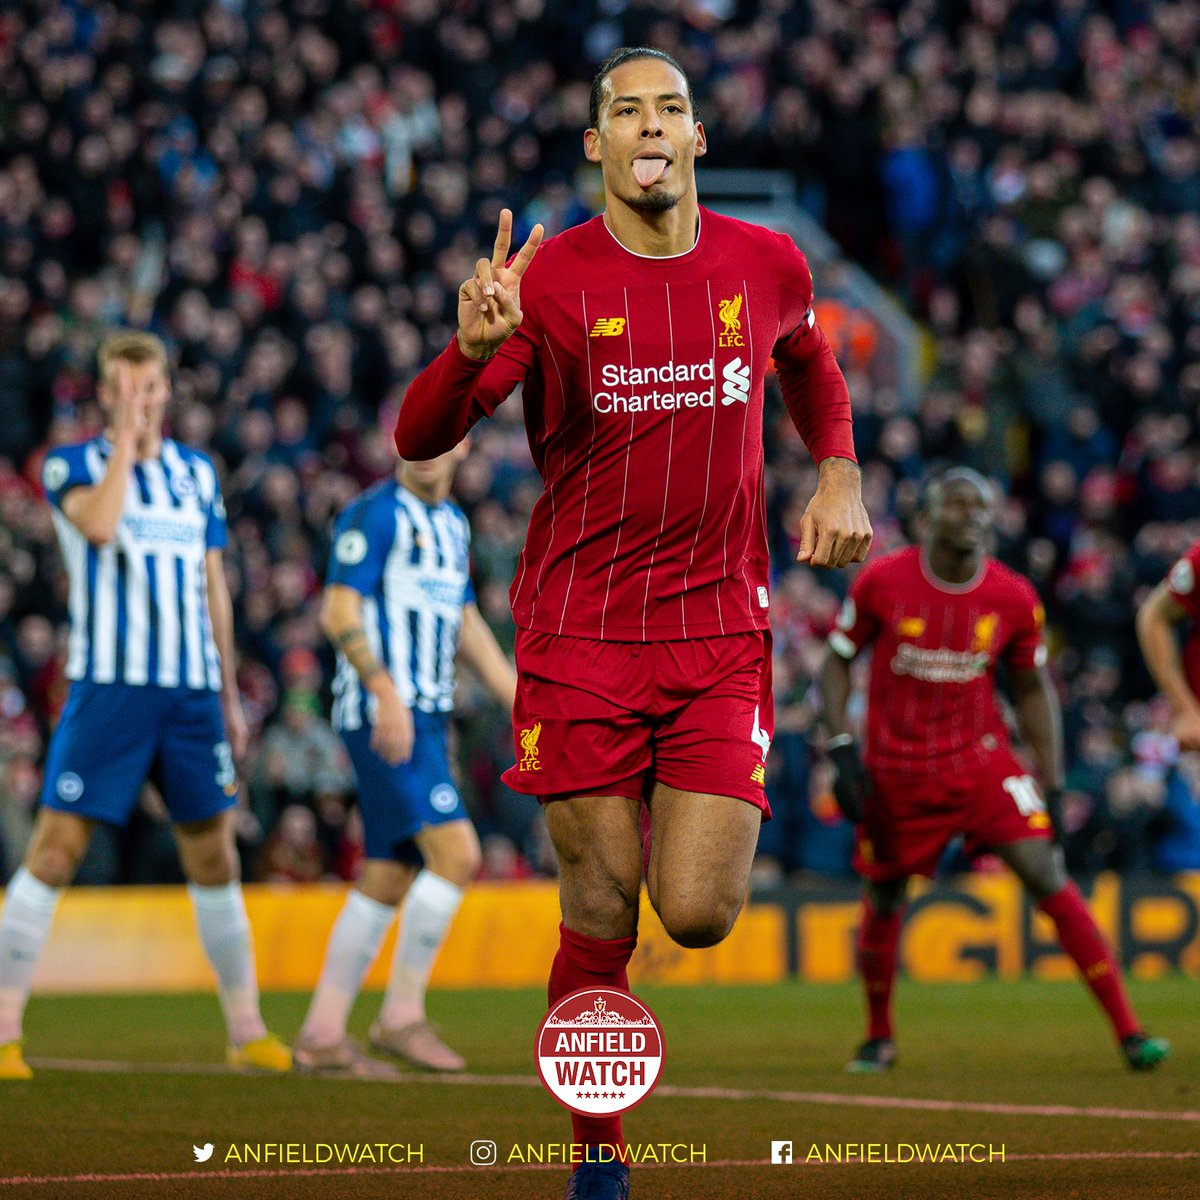 """Virgil van Dijk: """"All the stories about his (Klopp's) training, the way he has made us so much fitter are true. I call it the German style, running, running and running. And when you think you are done, more running. Never in my life I have had to train so hard."""" 🏃🏻♂️"""